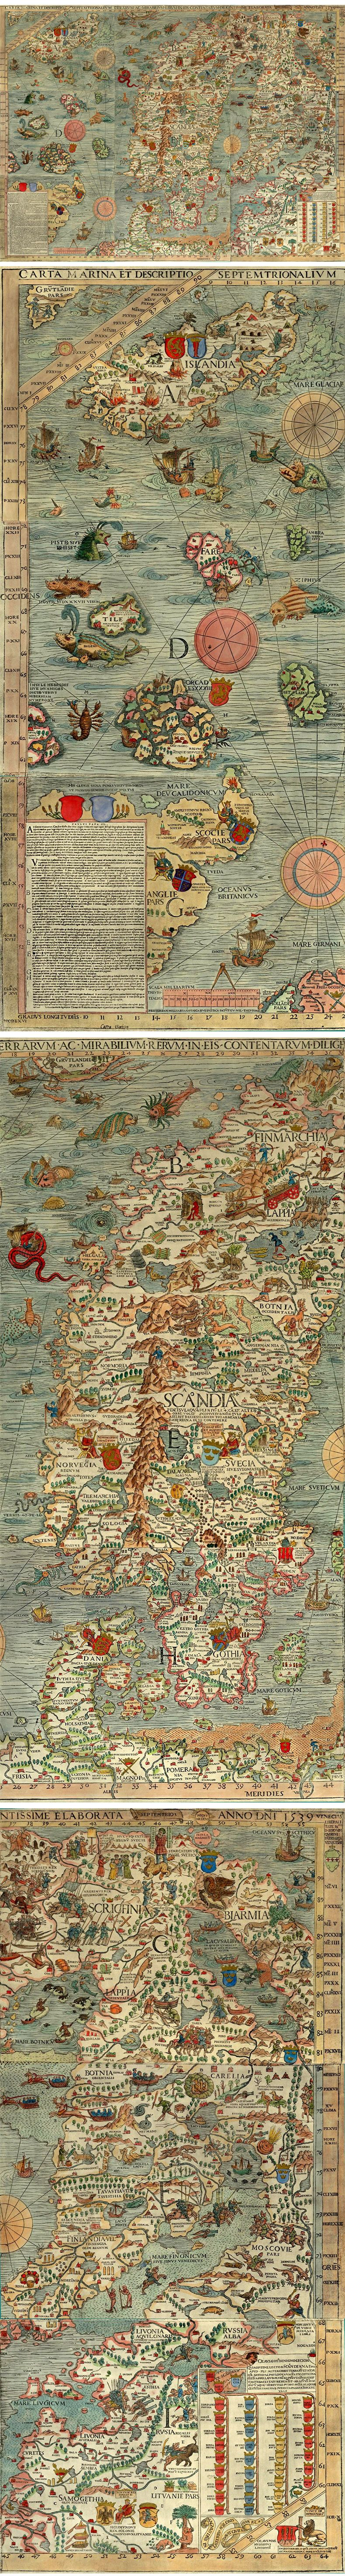 Carta Marina - This map was first printed in Venice in 1539 – it was created by the Olaus Magnus, a Swedish ecclesiastical official who lived in Italy from 1524 to his death in 1567. This map of Scandinavia is very large (125 cm tall and 170 cm wide) and is colourfully illustrated with various animals and monsters.